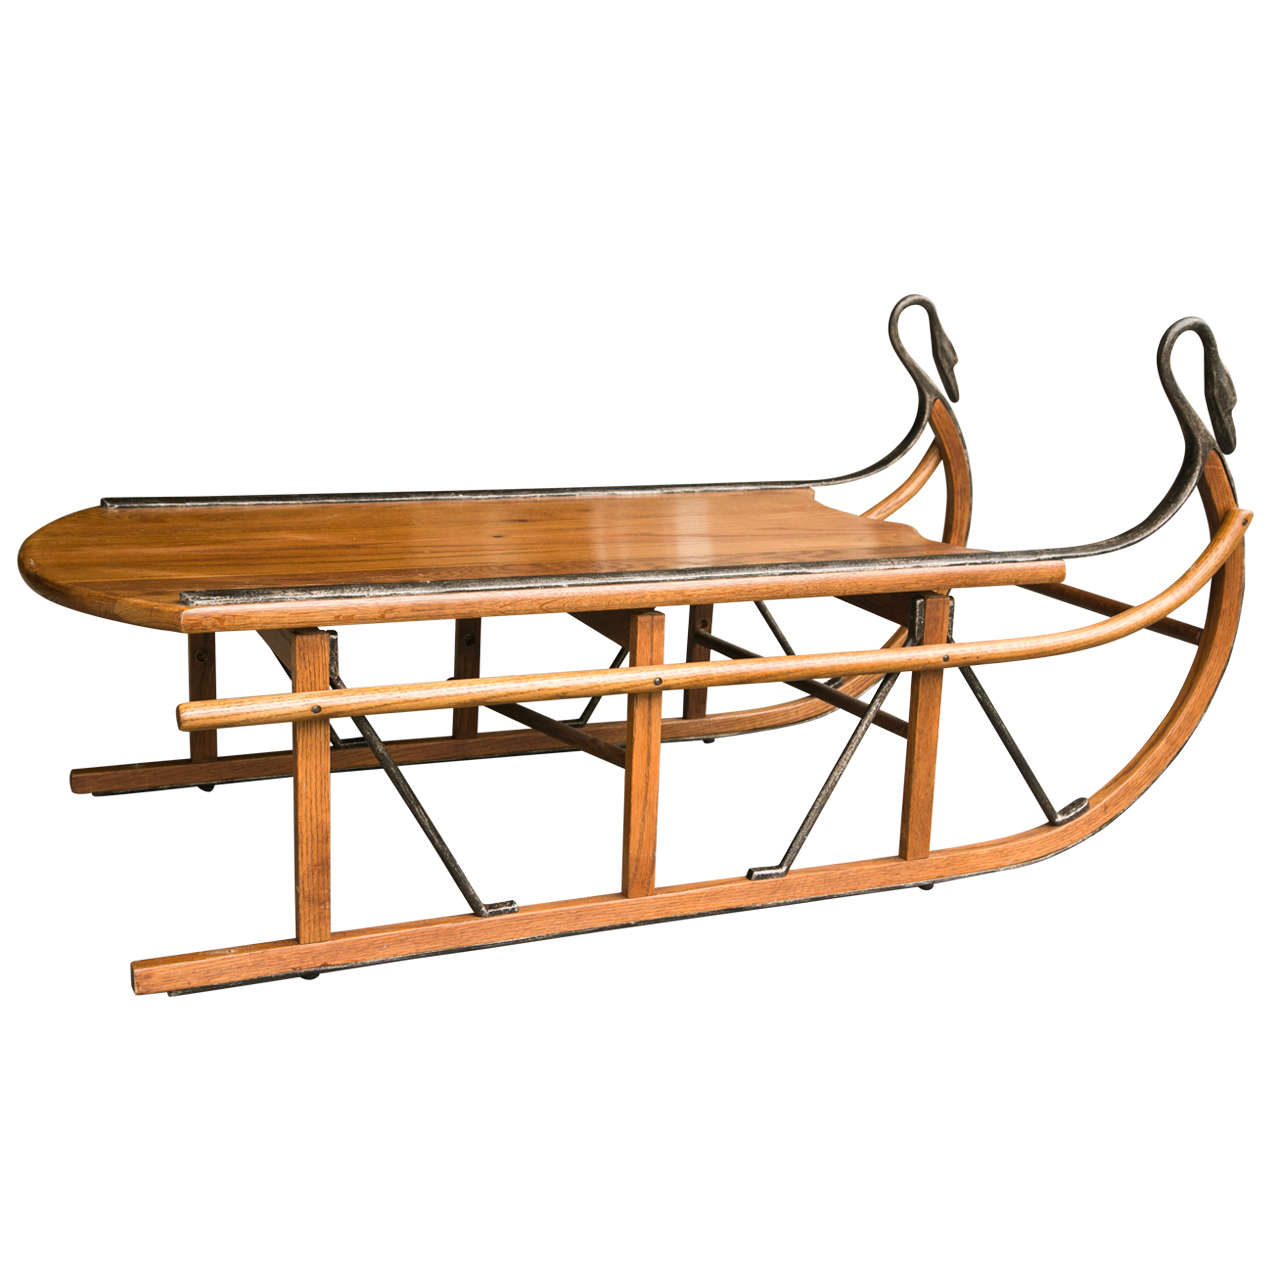 Unusual coffee table in the form of a sled at 1stdibs for Quirky coffee tables